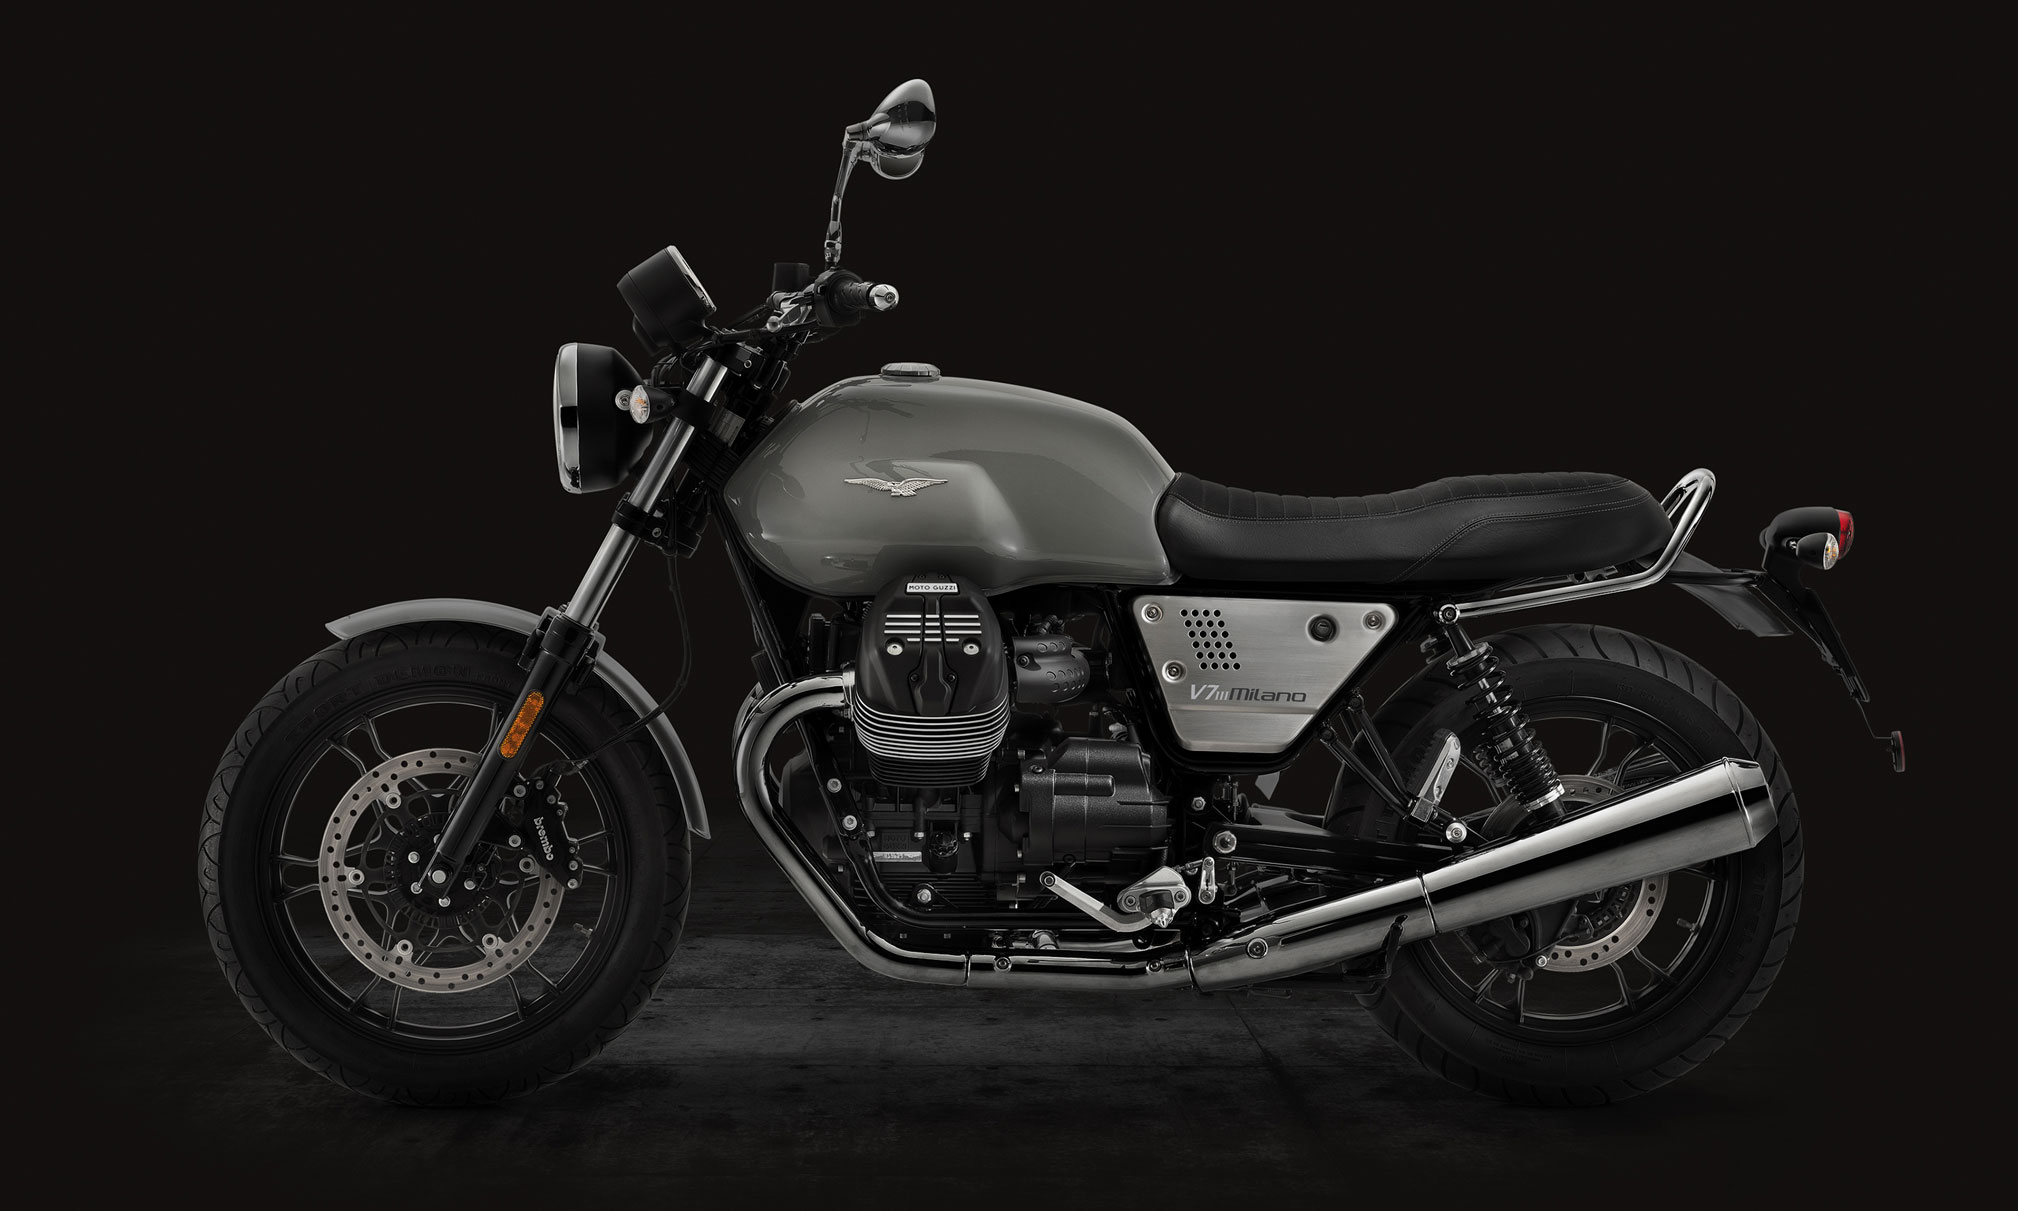 2018 moto guzzi v7iii rough review totalmotorcycle. Black Bedroom Furniture Sets. Home Design Ideas